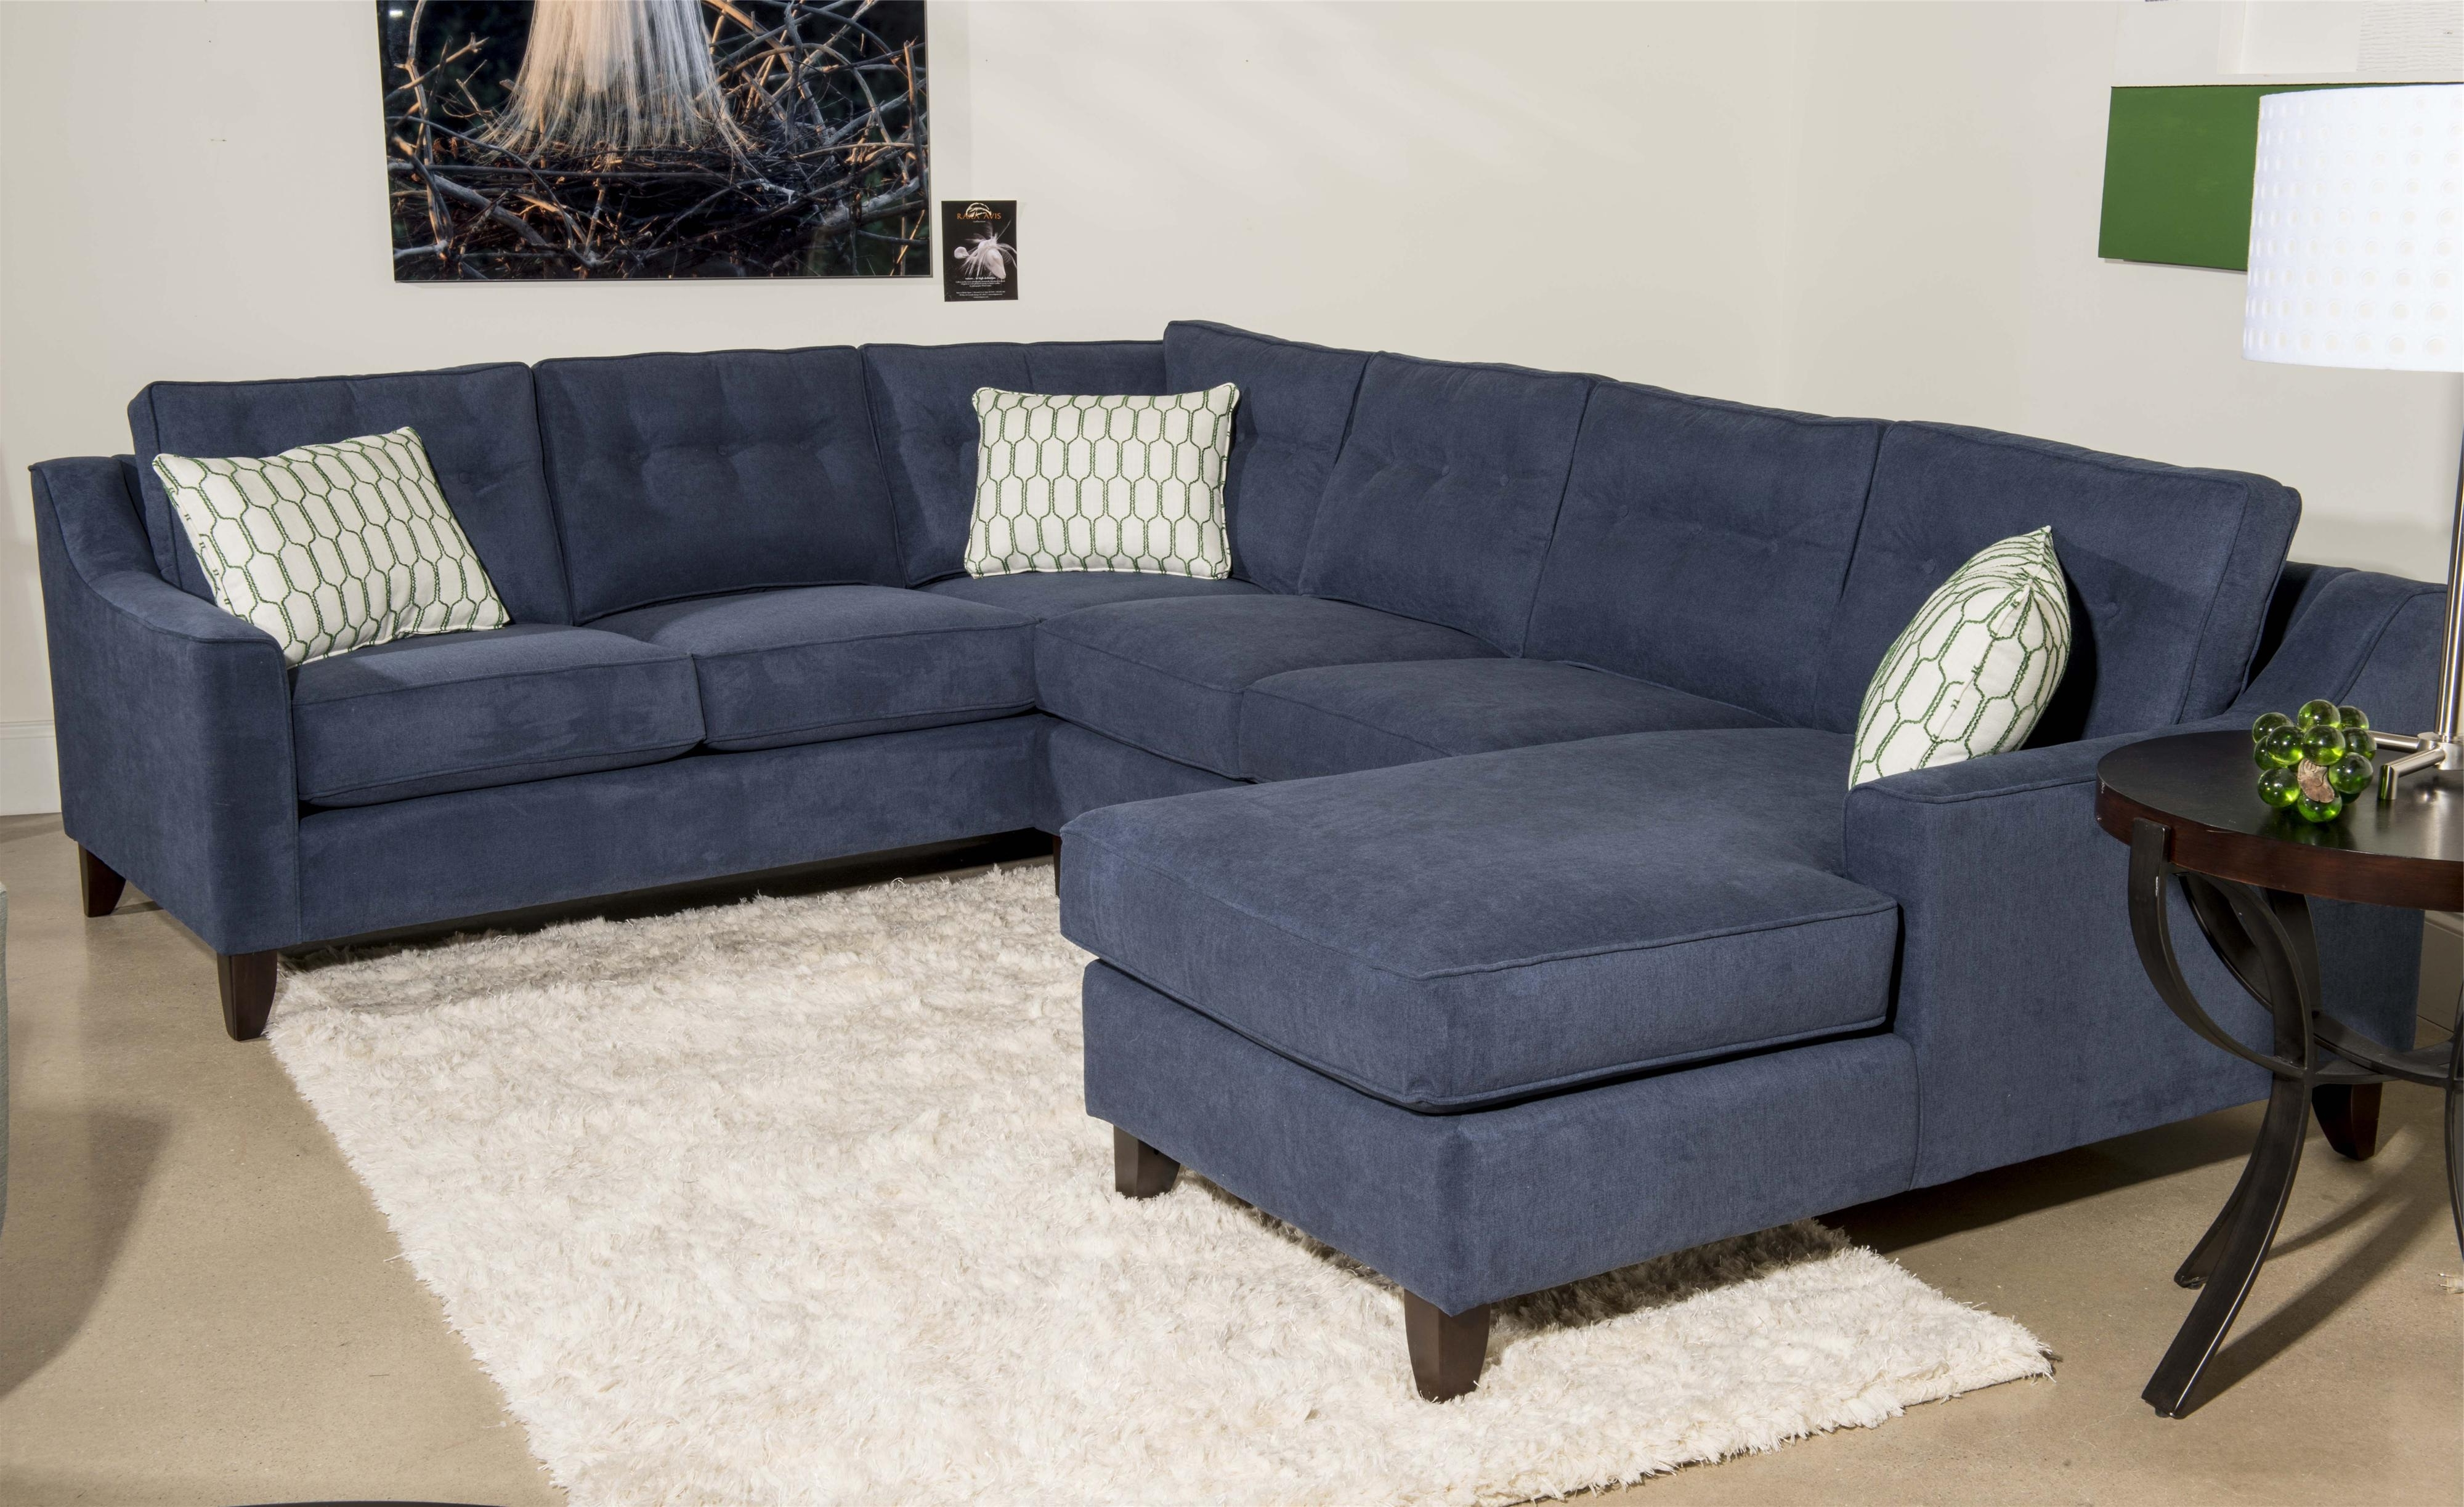 Most Current 3 Piece Sectional Sleeper Sofas Inside Contemporary 3 Piece Sectional Sofa With Chaiseklaussner (View 13 of 15)